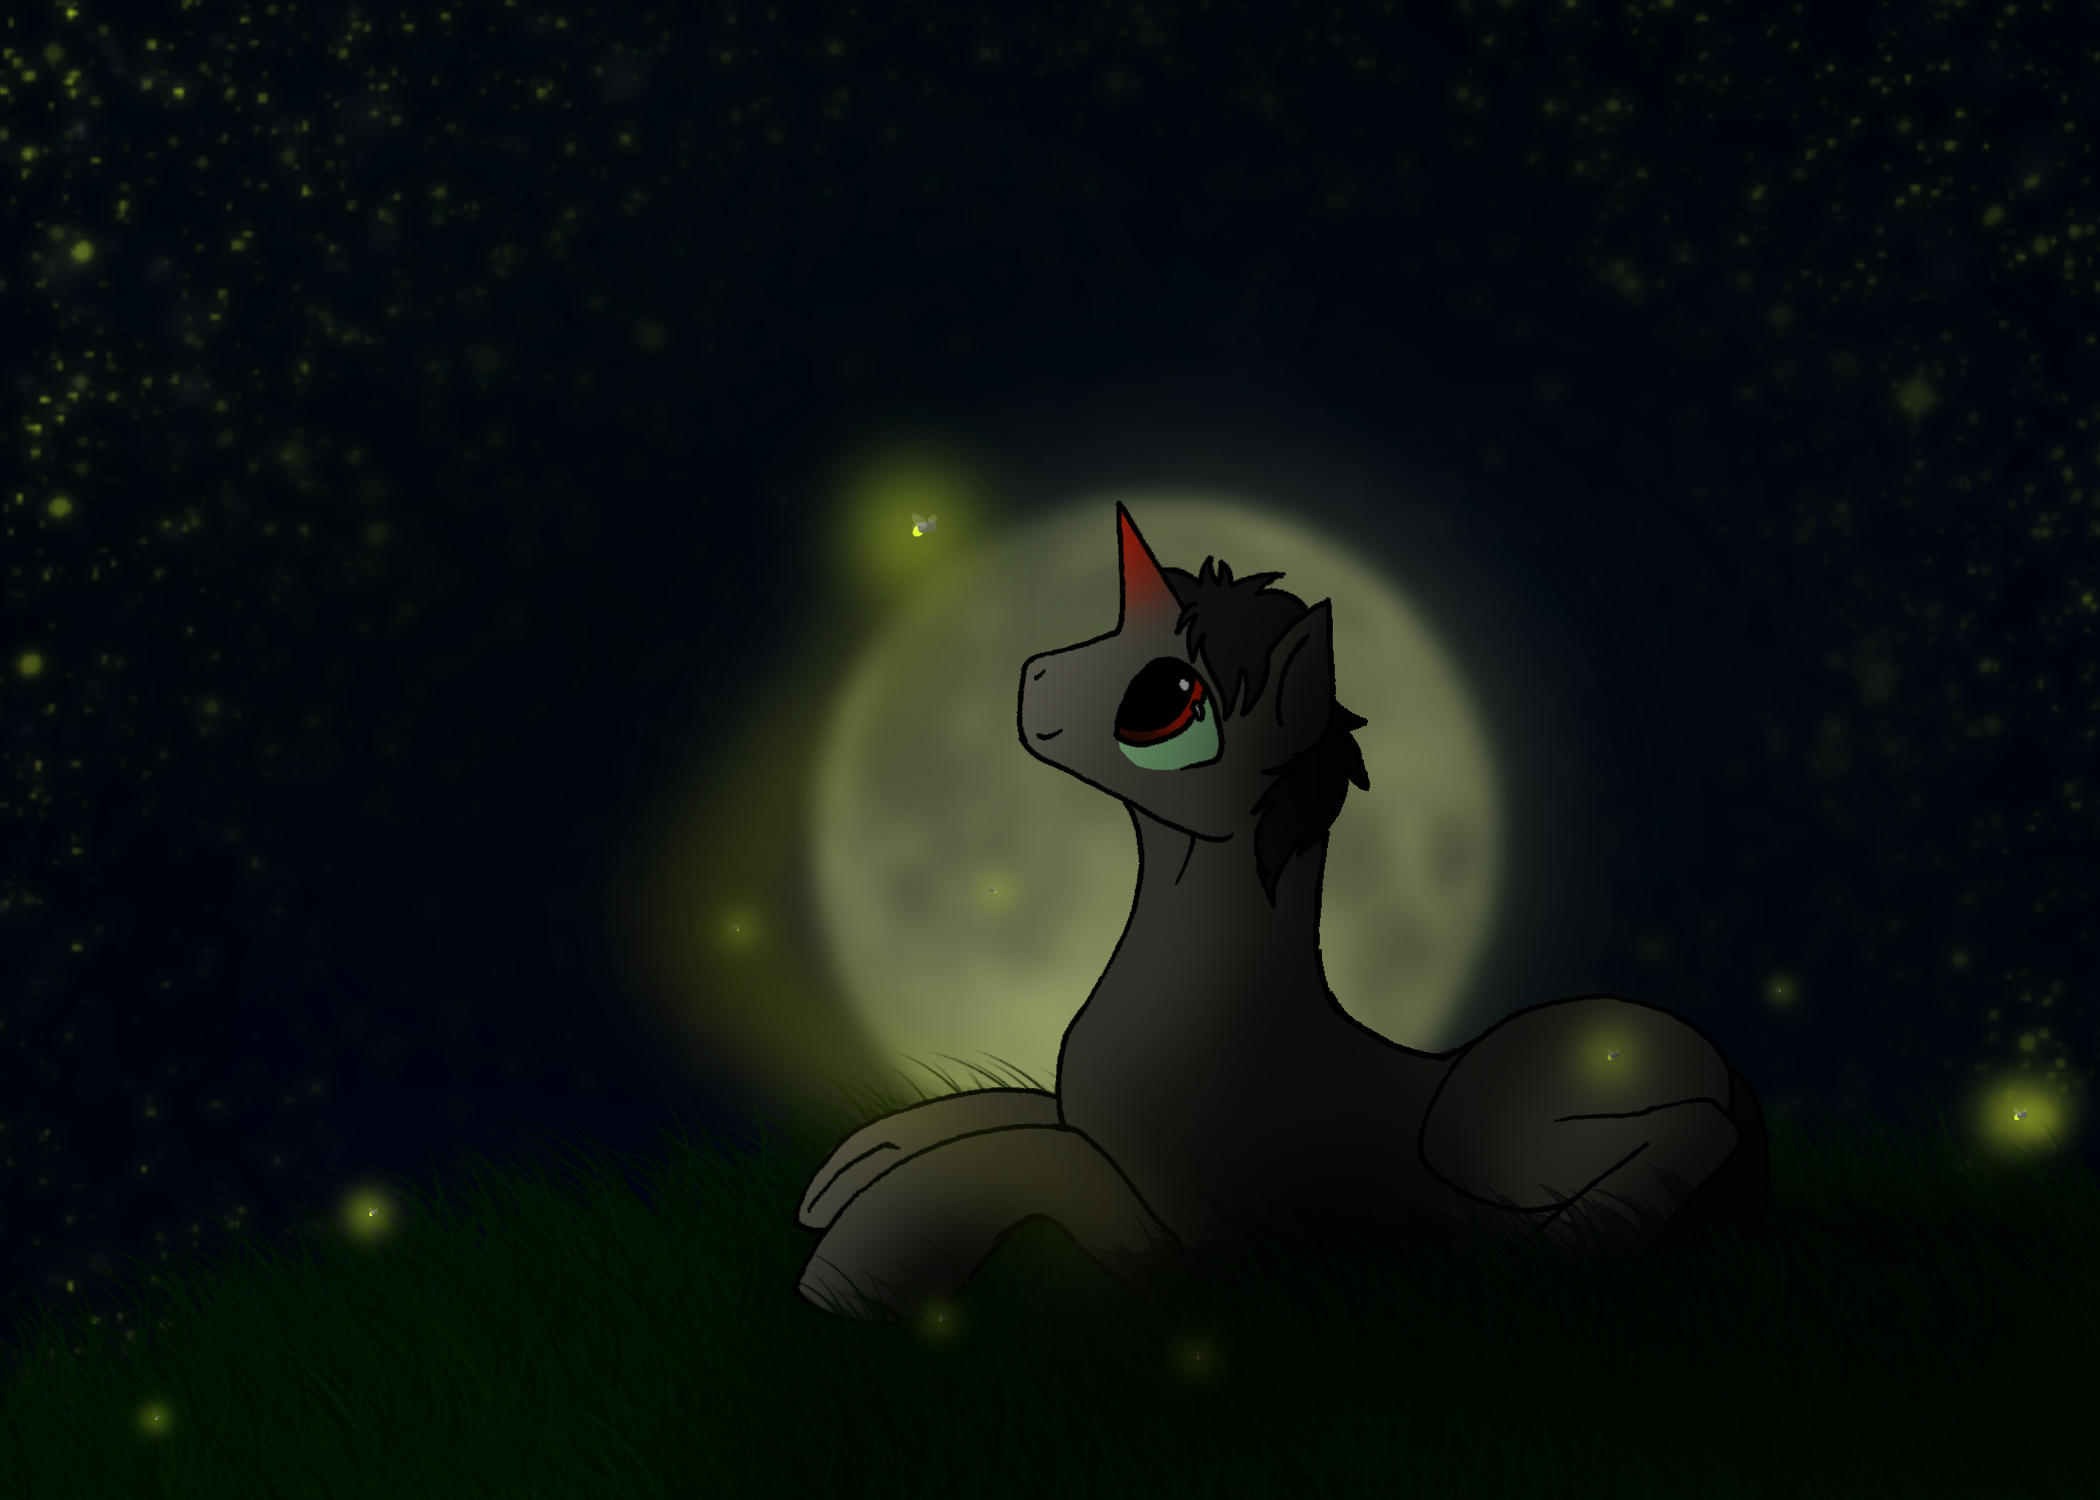 Of Shadows and Fireflies by IceOfWaterflock